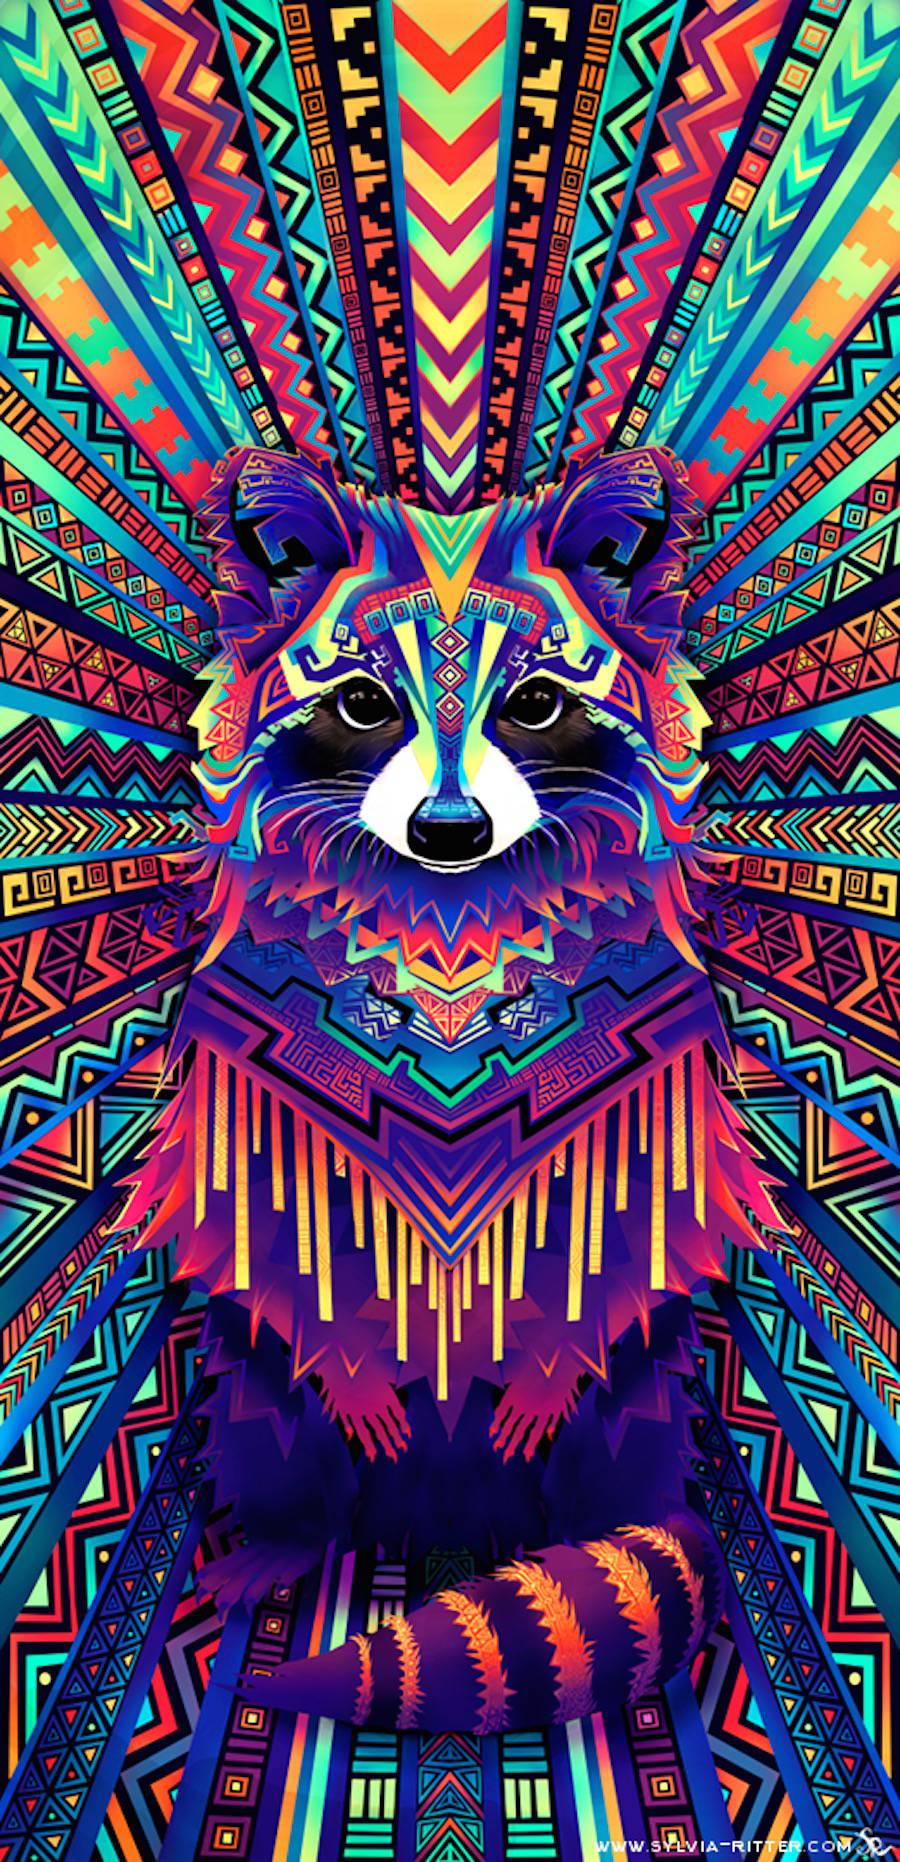 Colorful Digital Illustrations of Animals